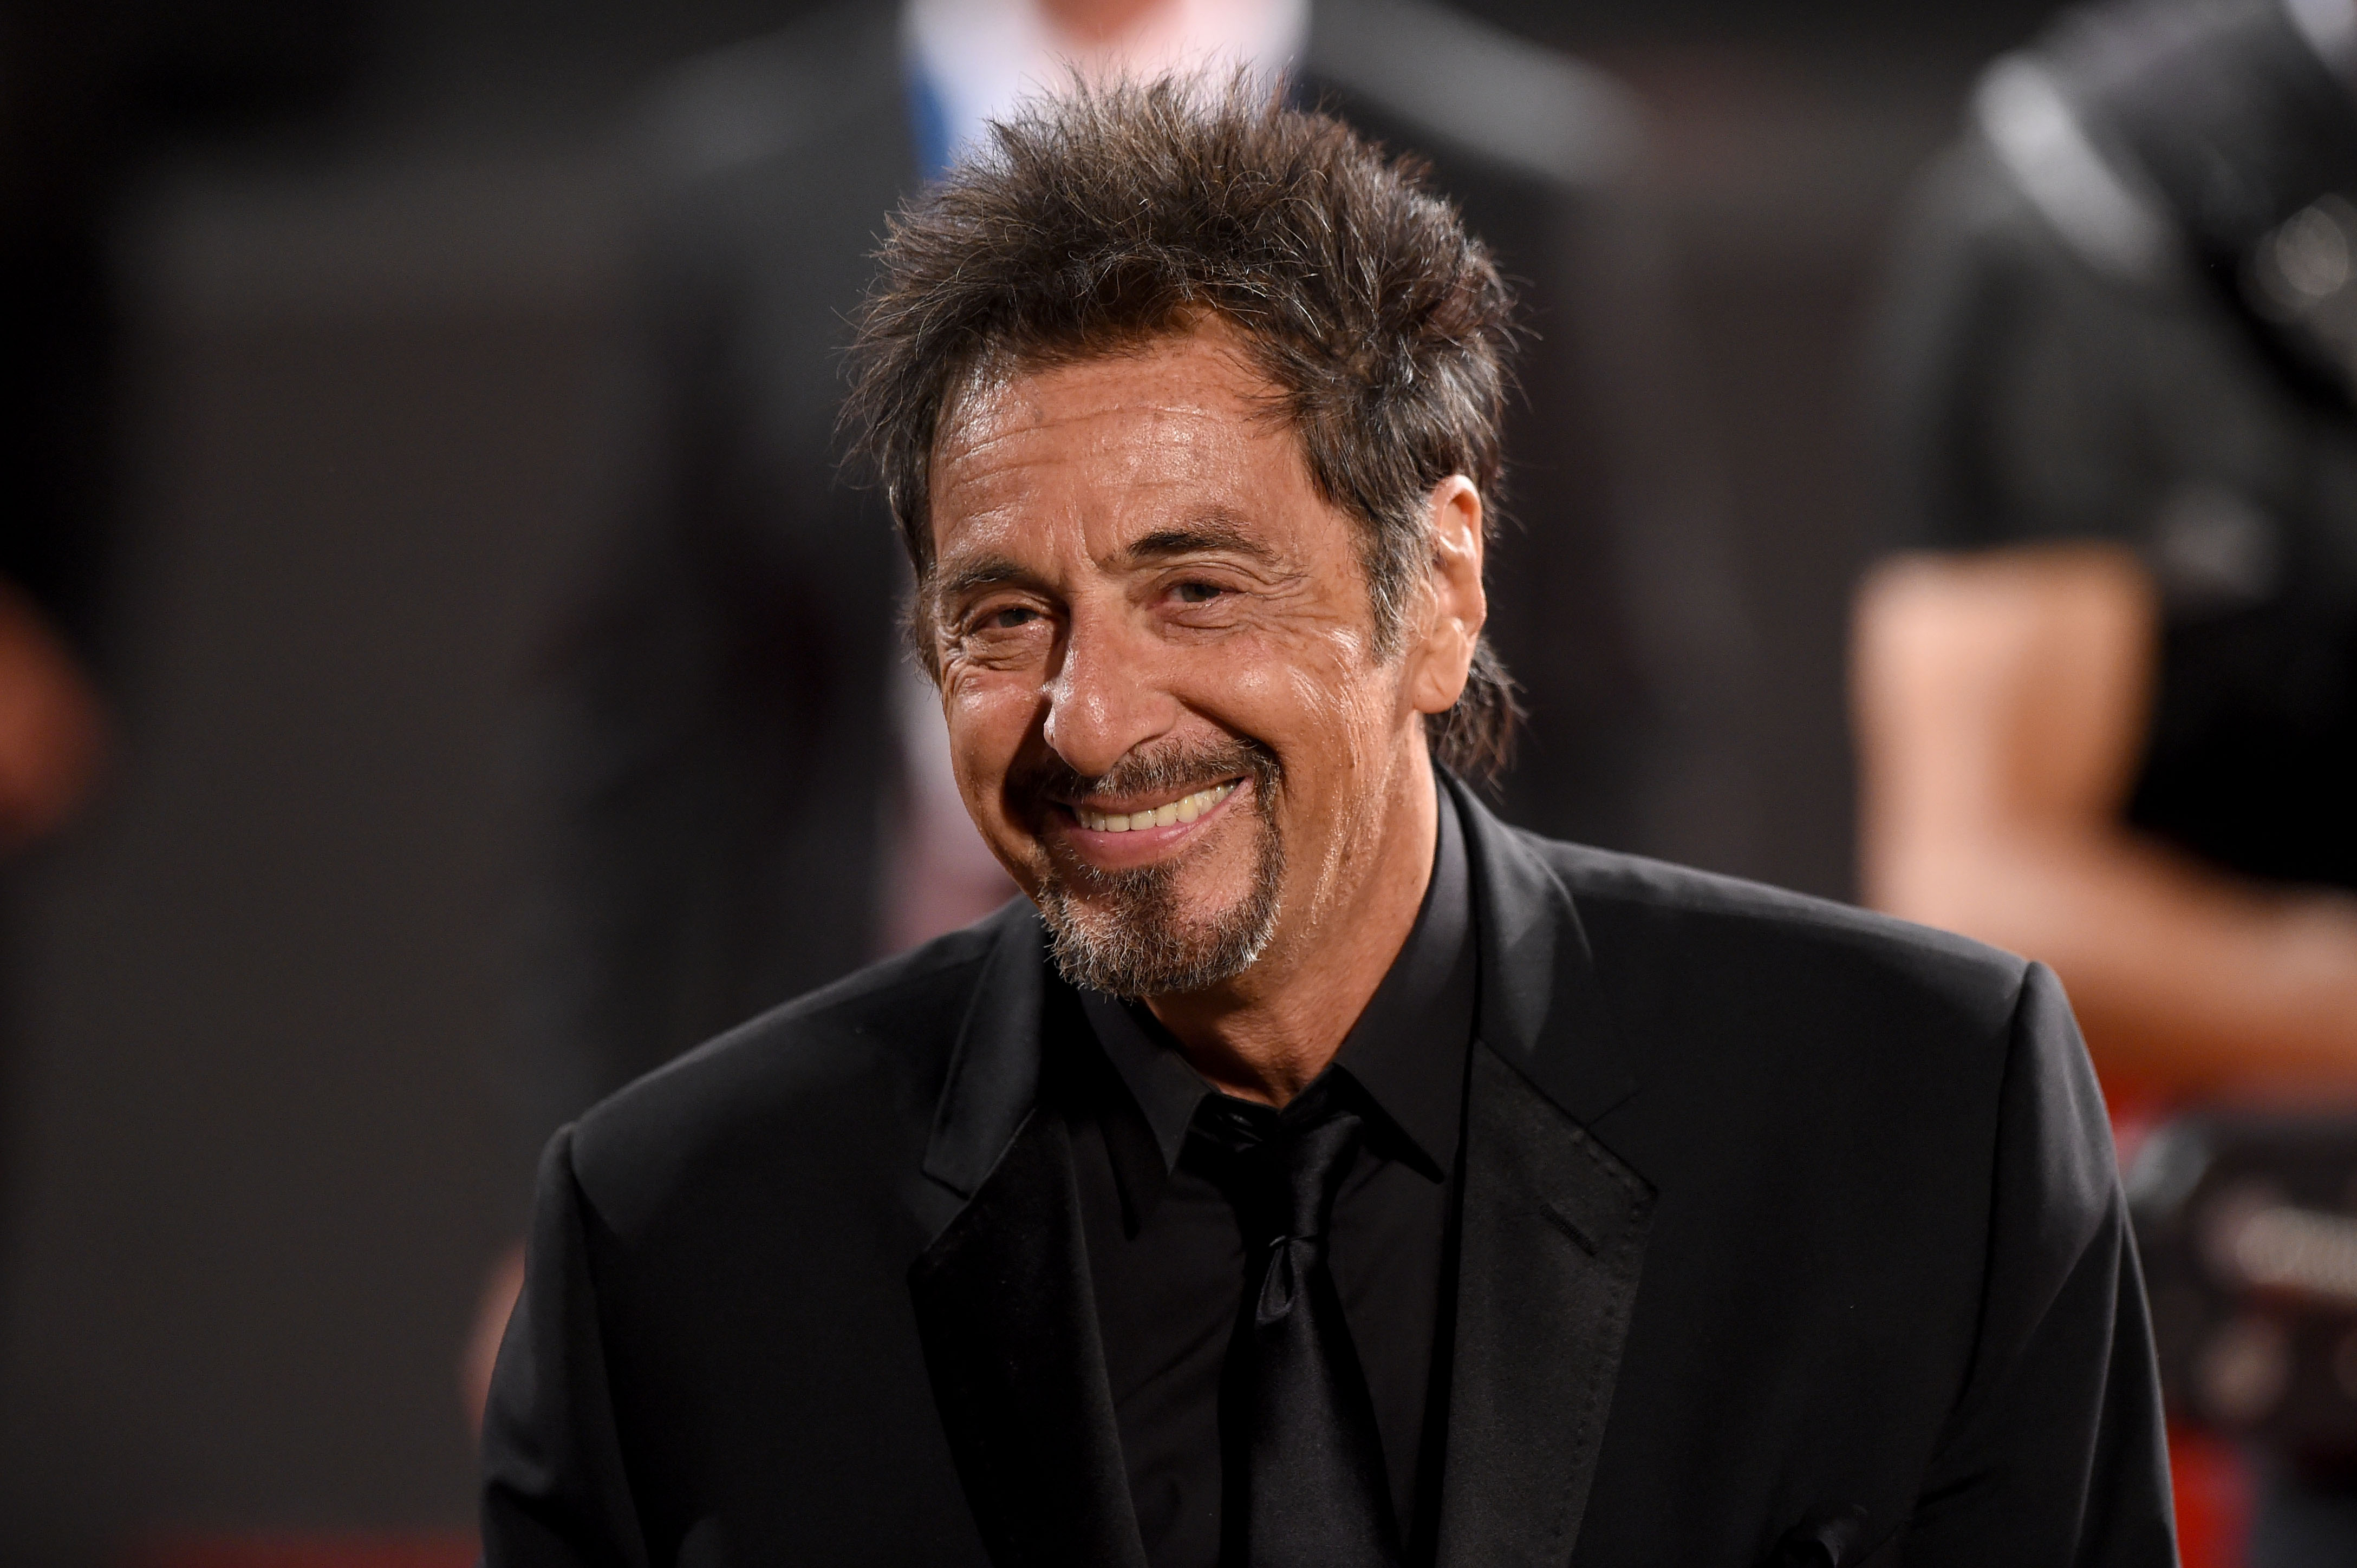 al pacino wallpapers high resolution and quality download. Black Bedroom Furniture Sets. Home Design Ideas